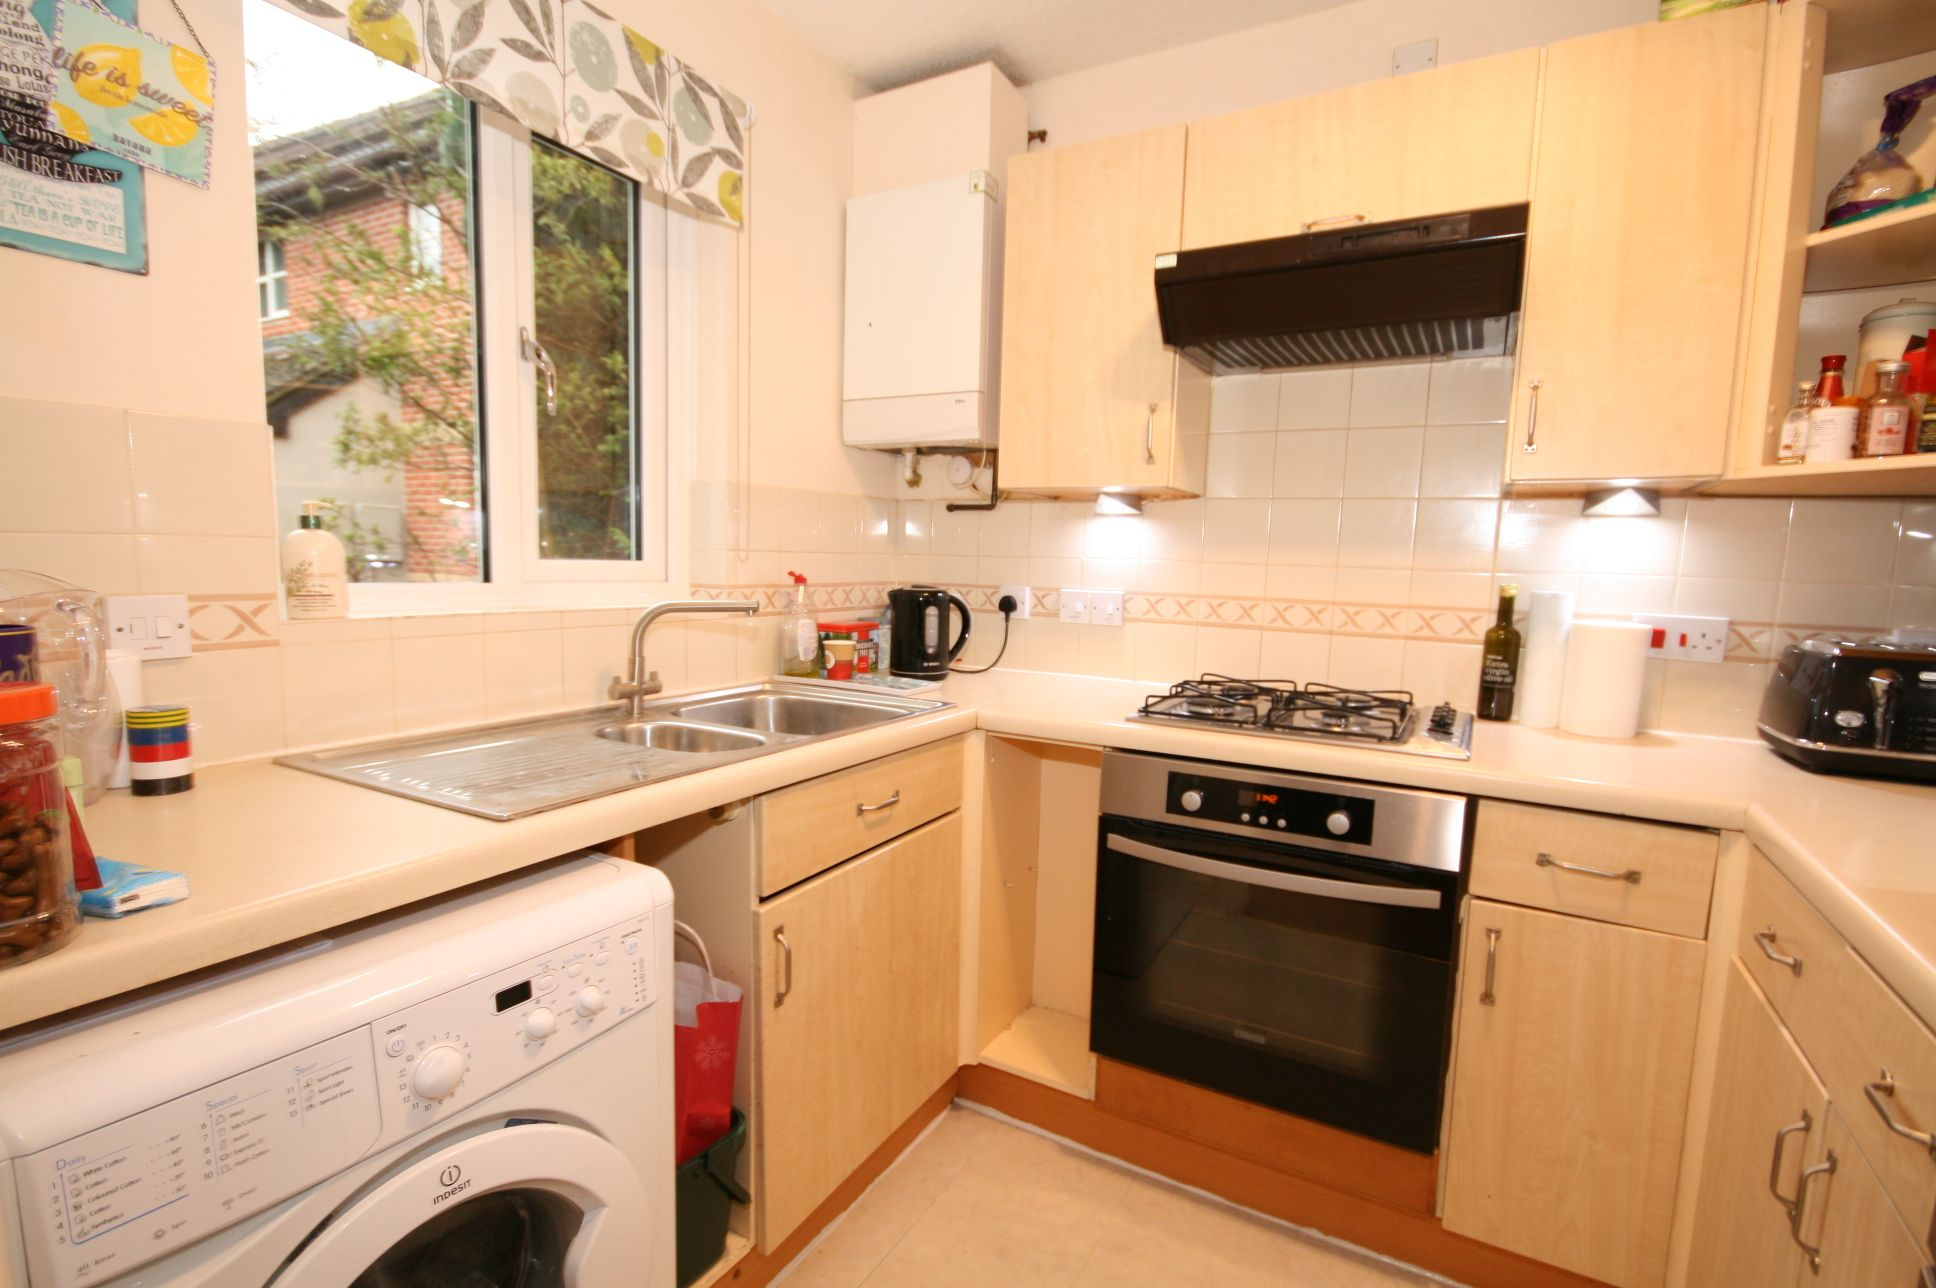 2 Bedroom End Terraced House For Sale - Fitted kitchen